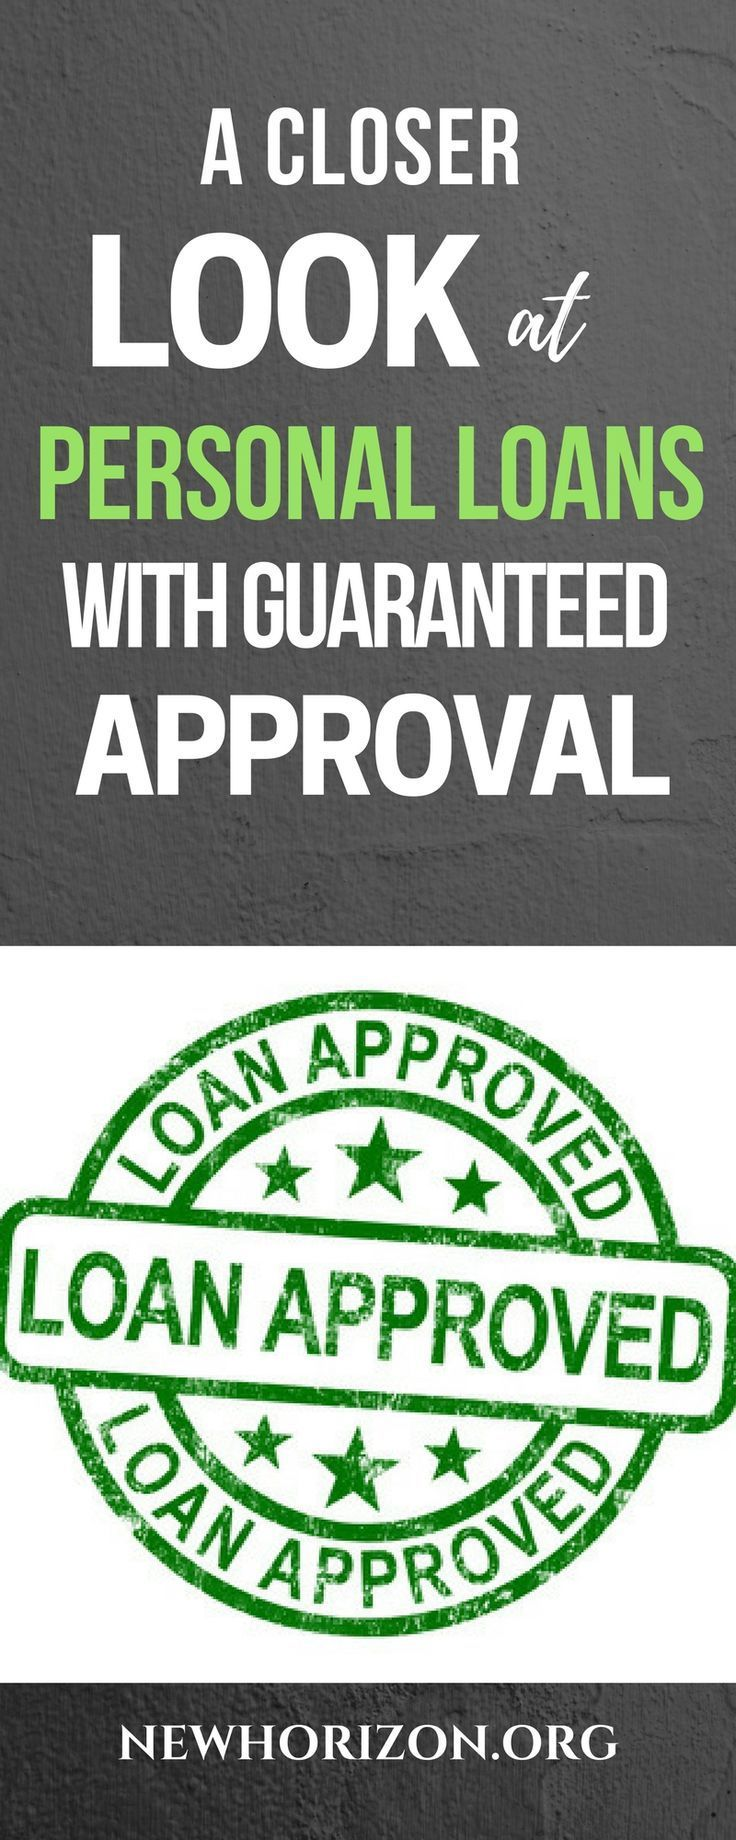 To better understand guaranteed approval personal loans